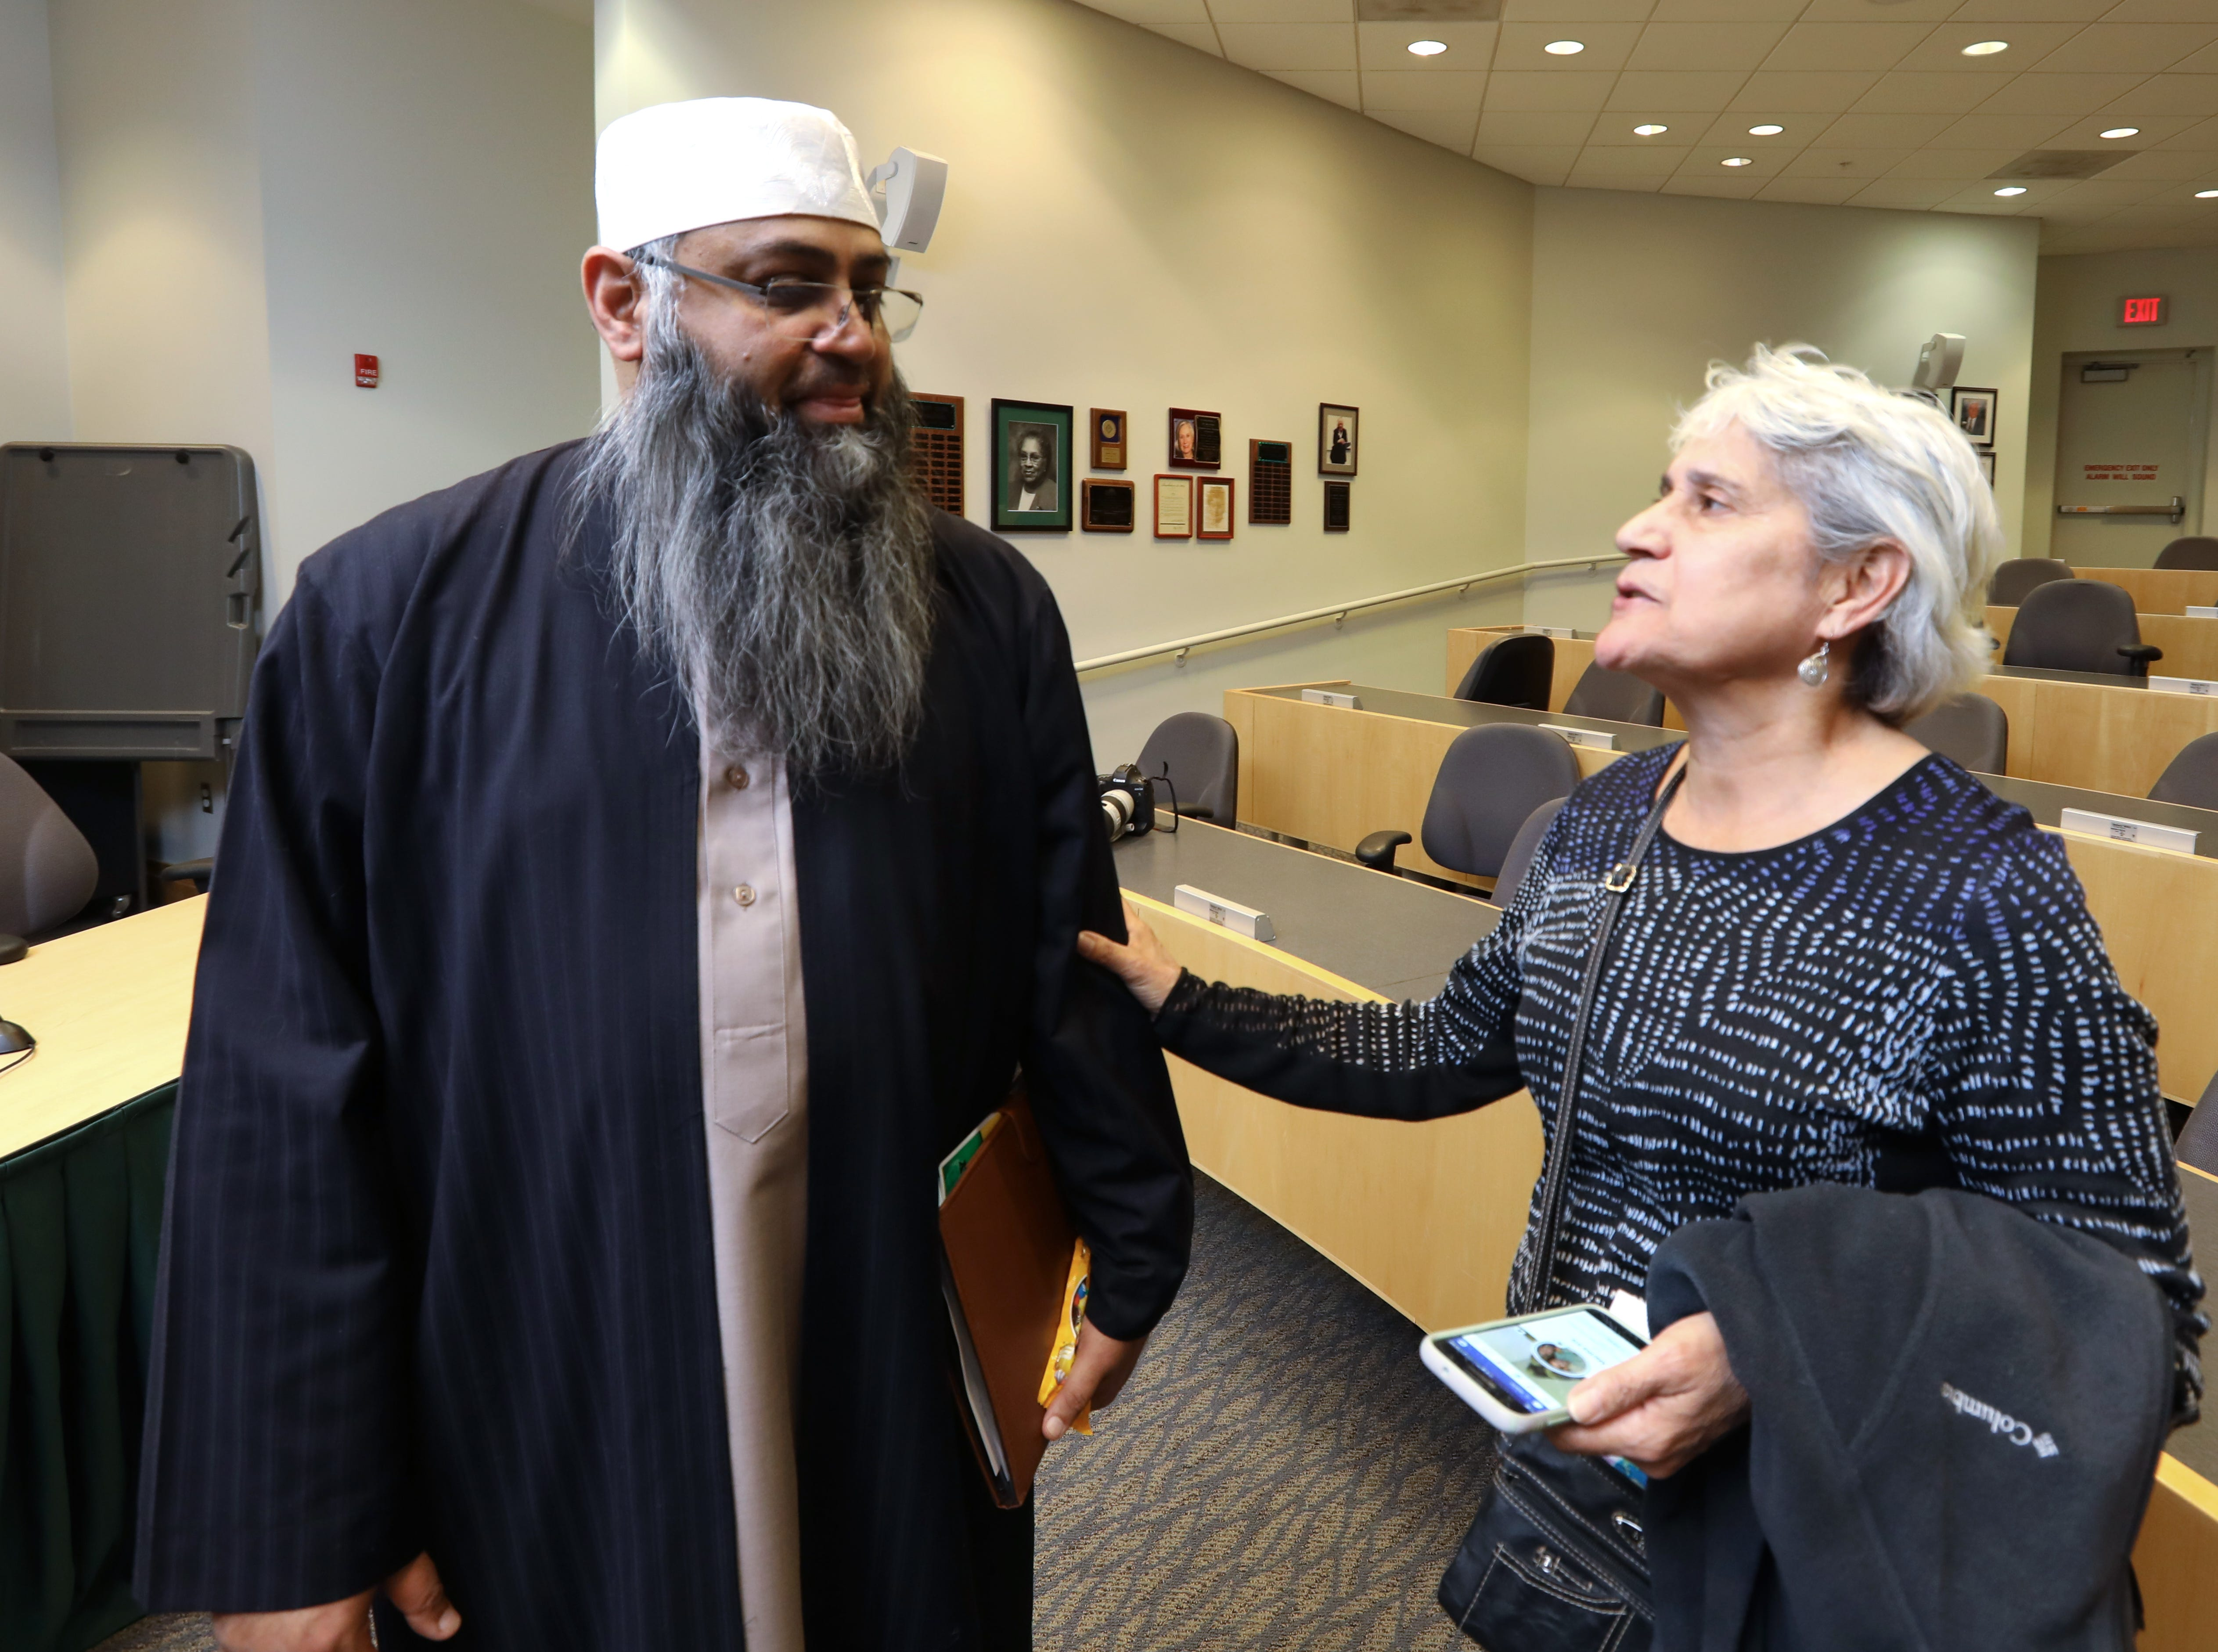 Interfaith Symposium held at Rockland Community College March 20, 2019.